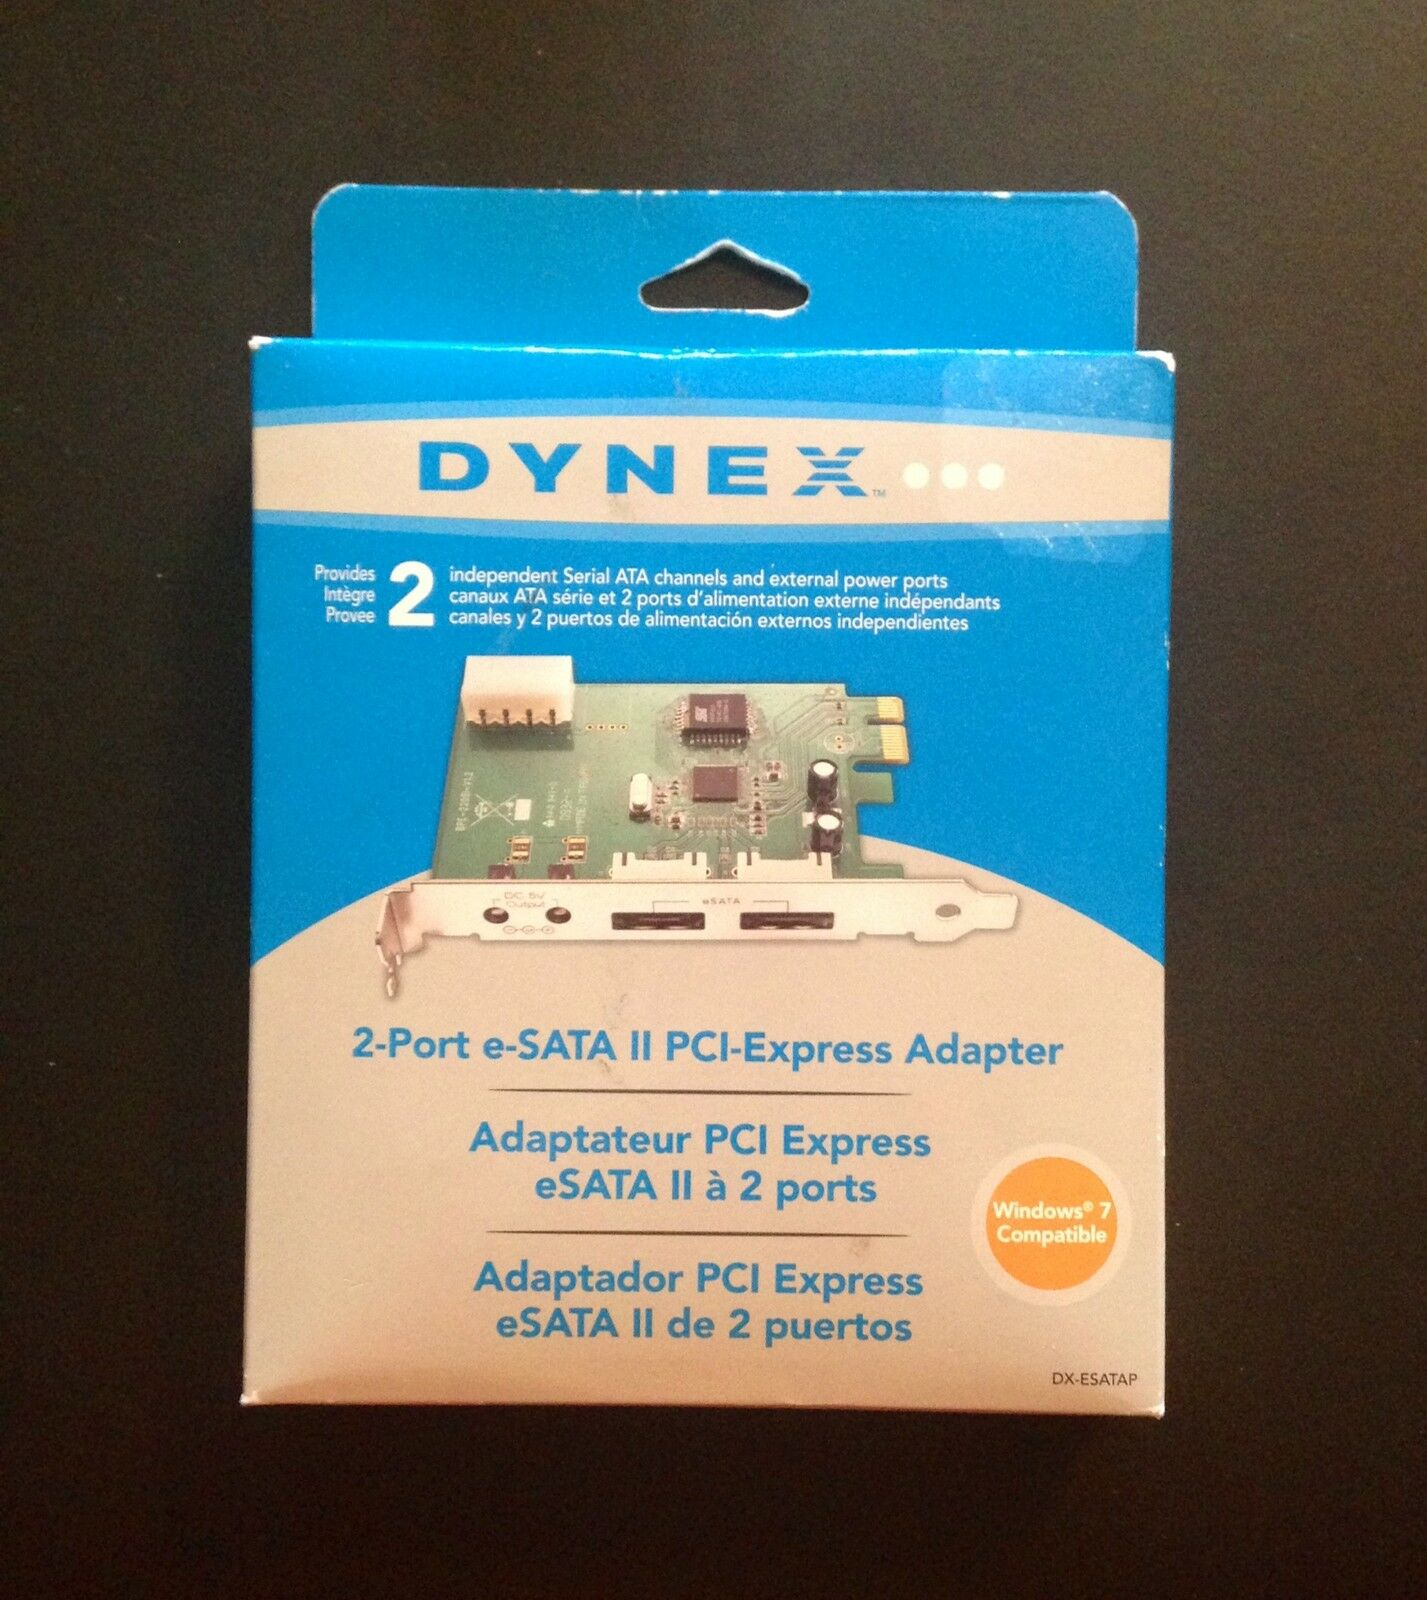 DYNEX DX ESATAP DRIVER FOR WINDOWS